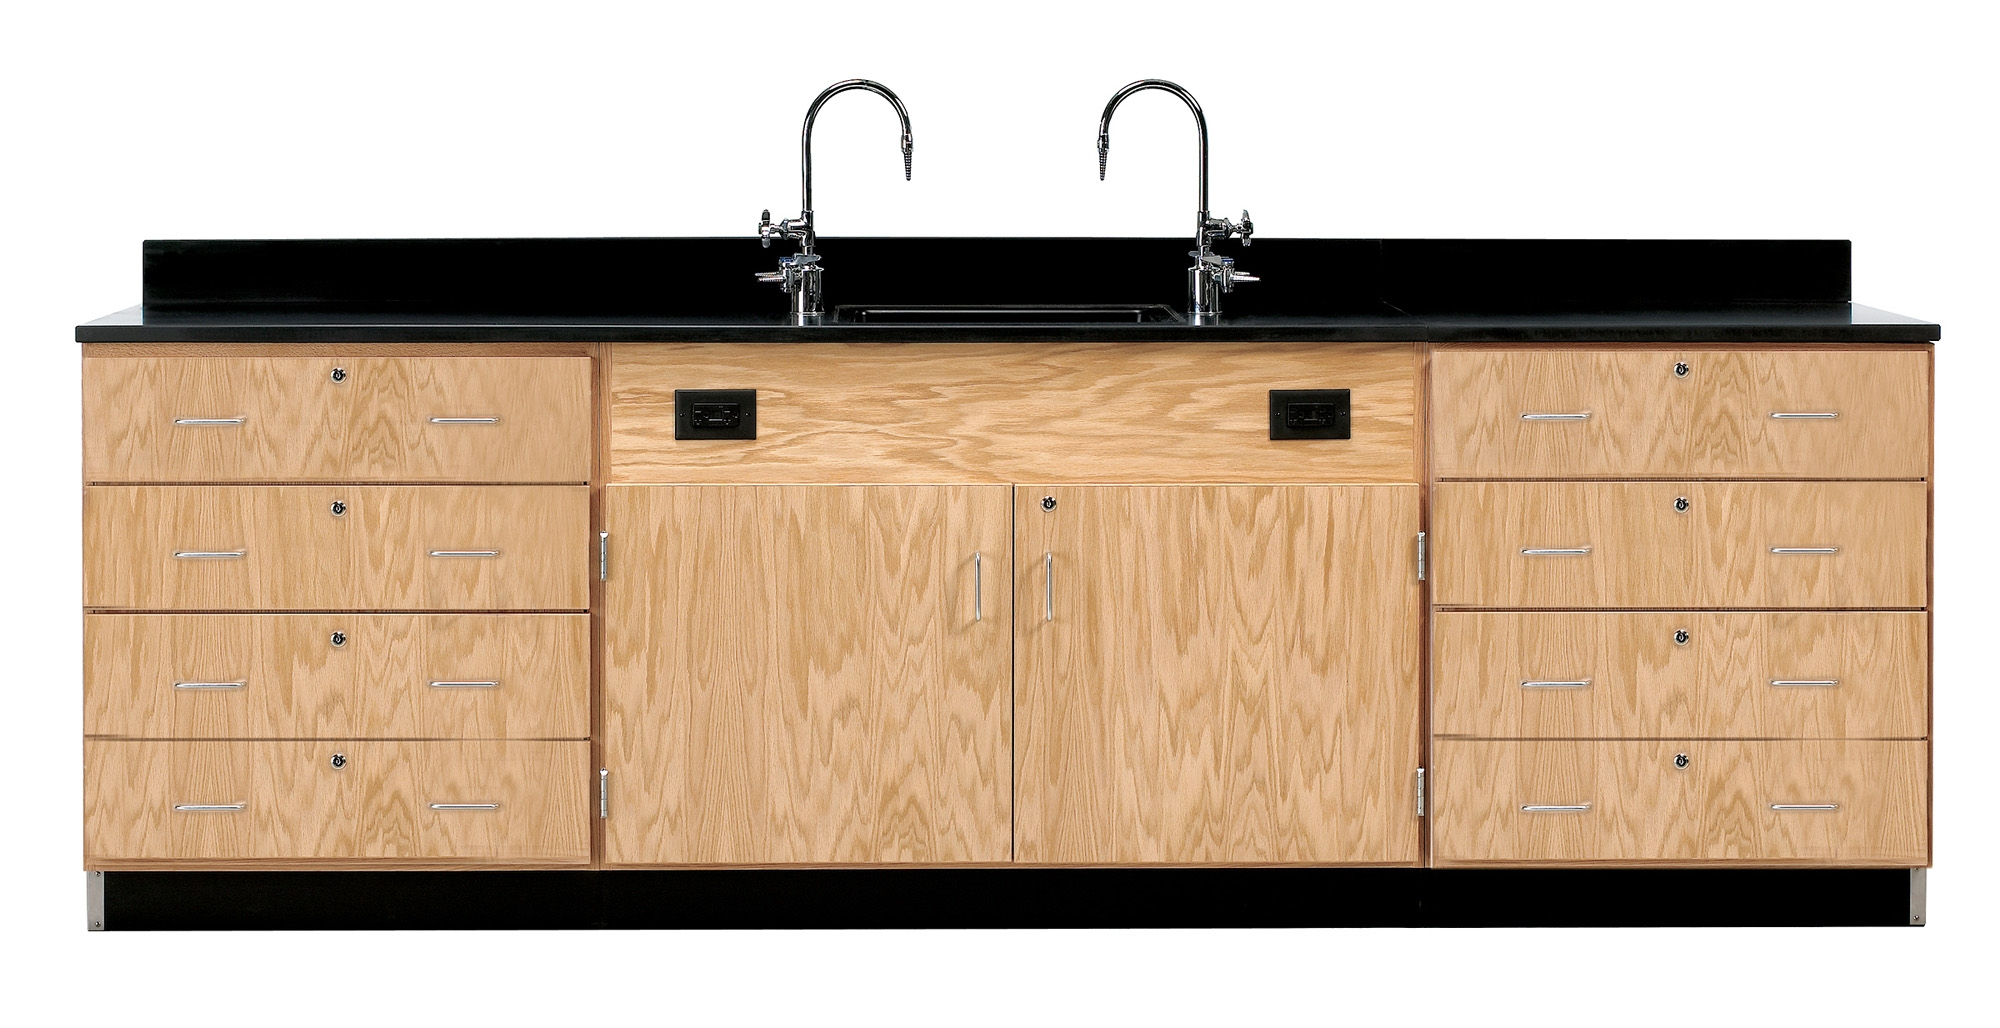 Diversified Woodcrafts Wall Service Bench with Drawers - Phenolic Top